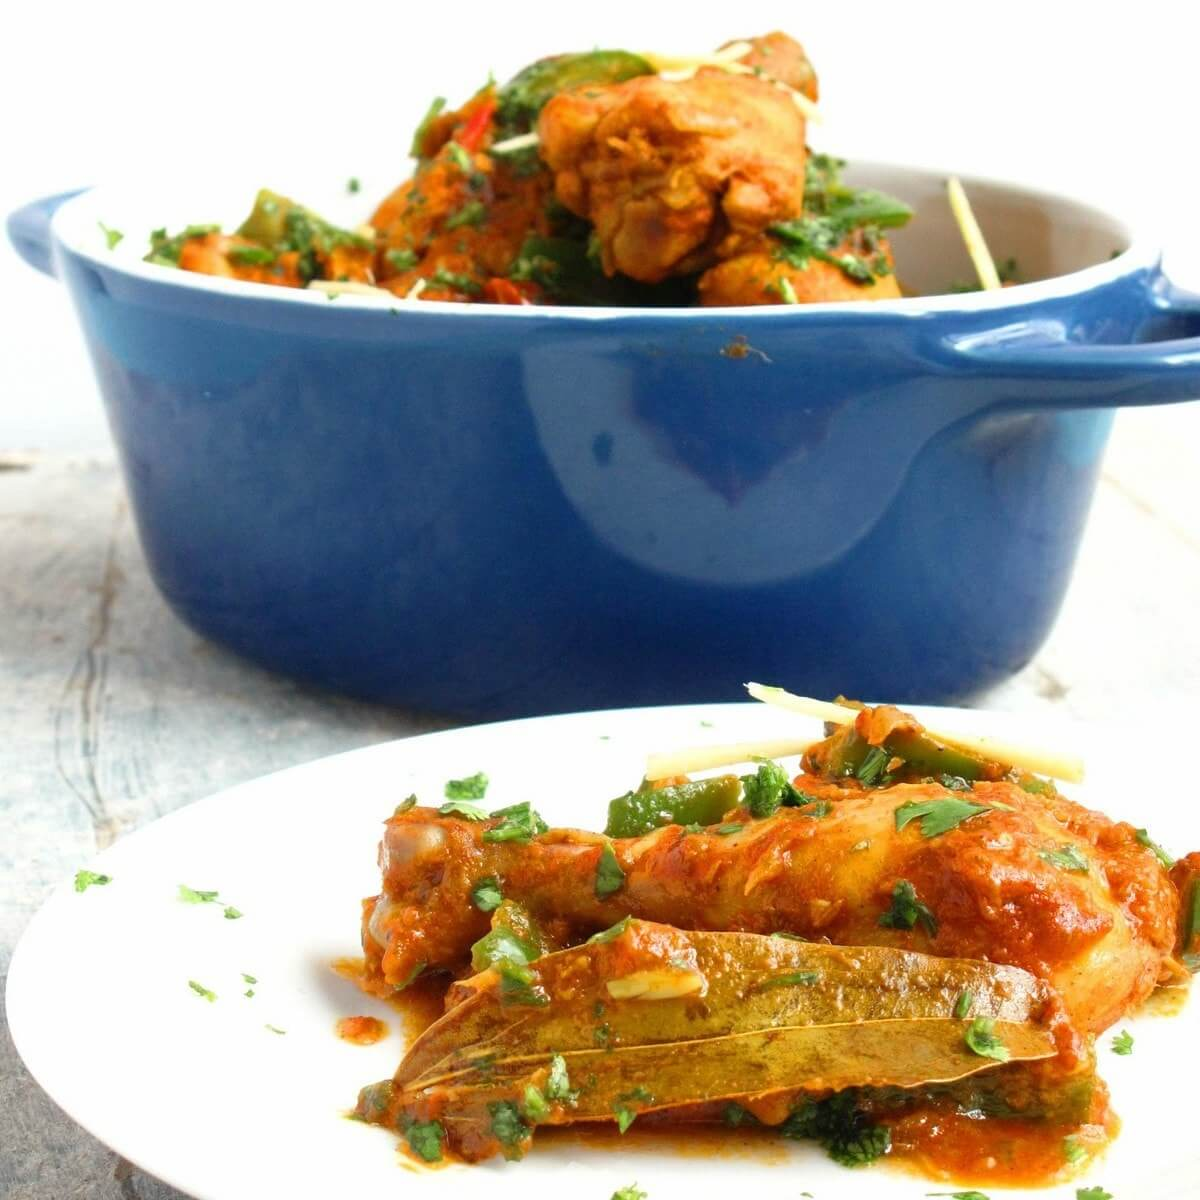 Karahi Ginger Chicken Full Recipes karahi ginger chicken full recipes Karahi Ginger Chicken Full Recipes Karahi Ginger Chicken Full Recipes